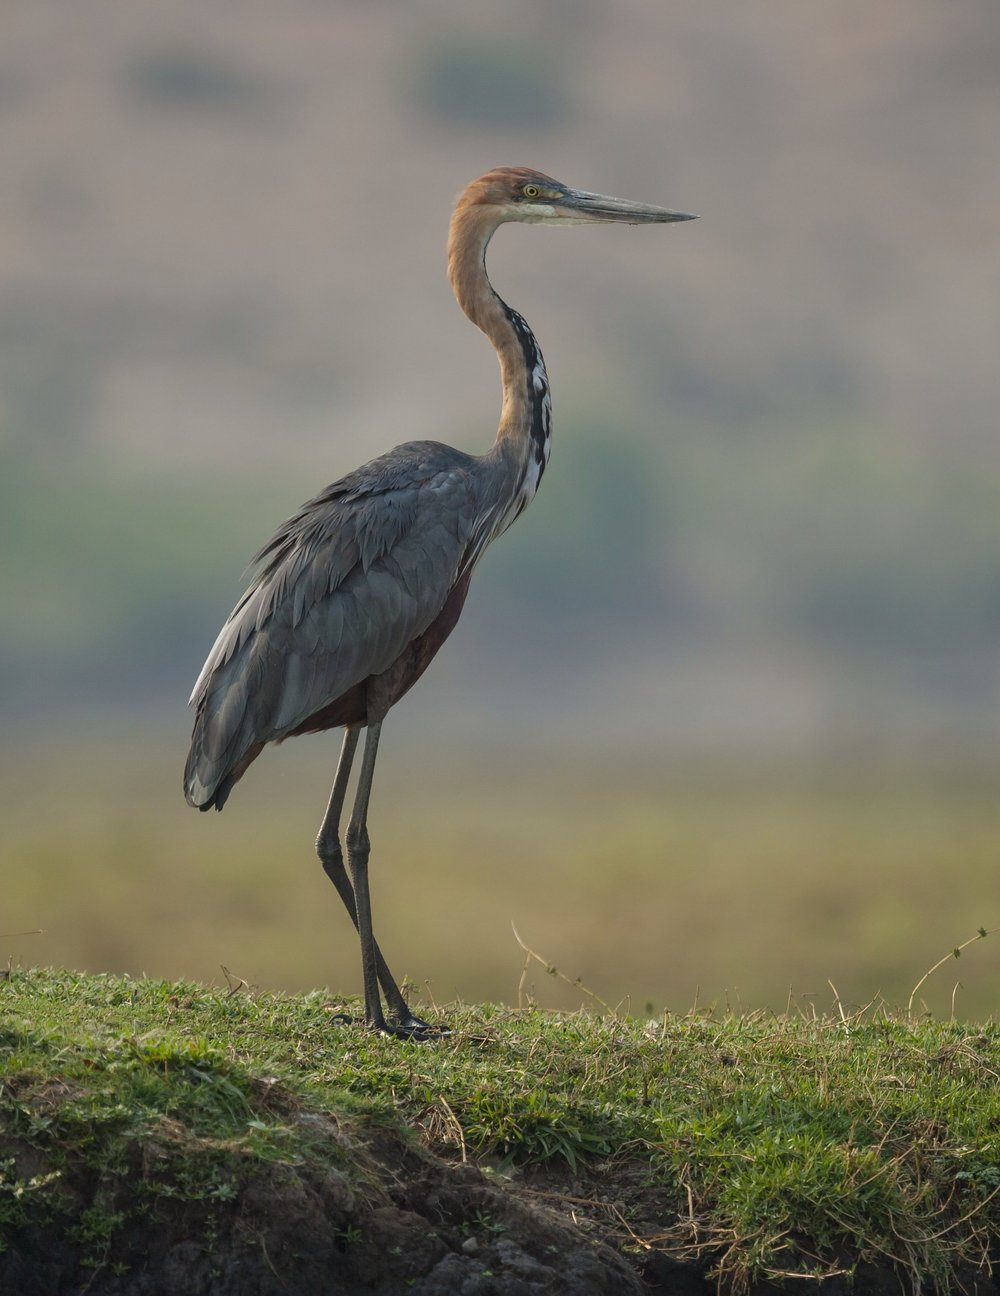 Goliath Heron Wildscreenexchange.jpg